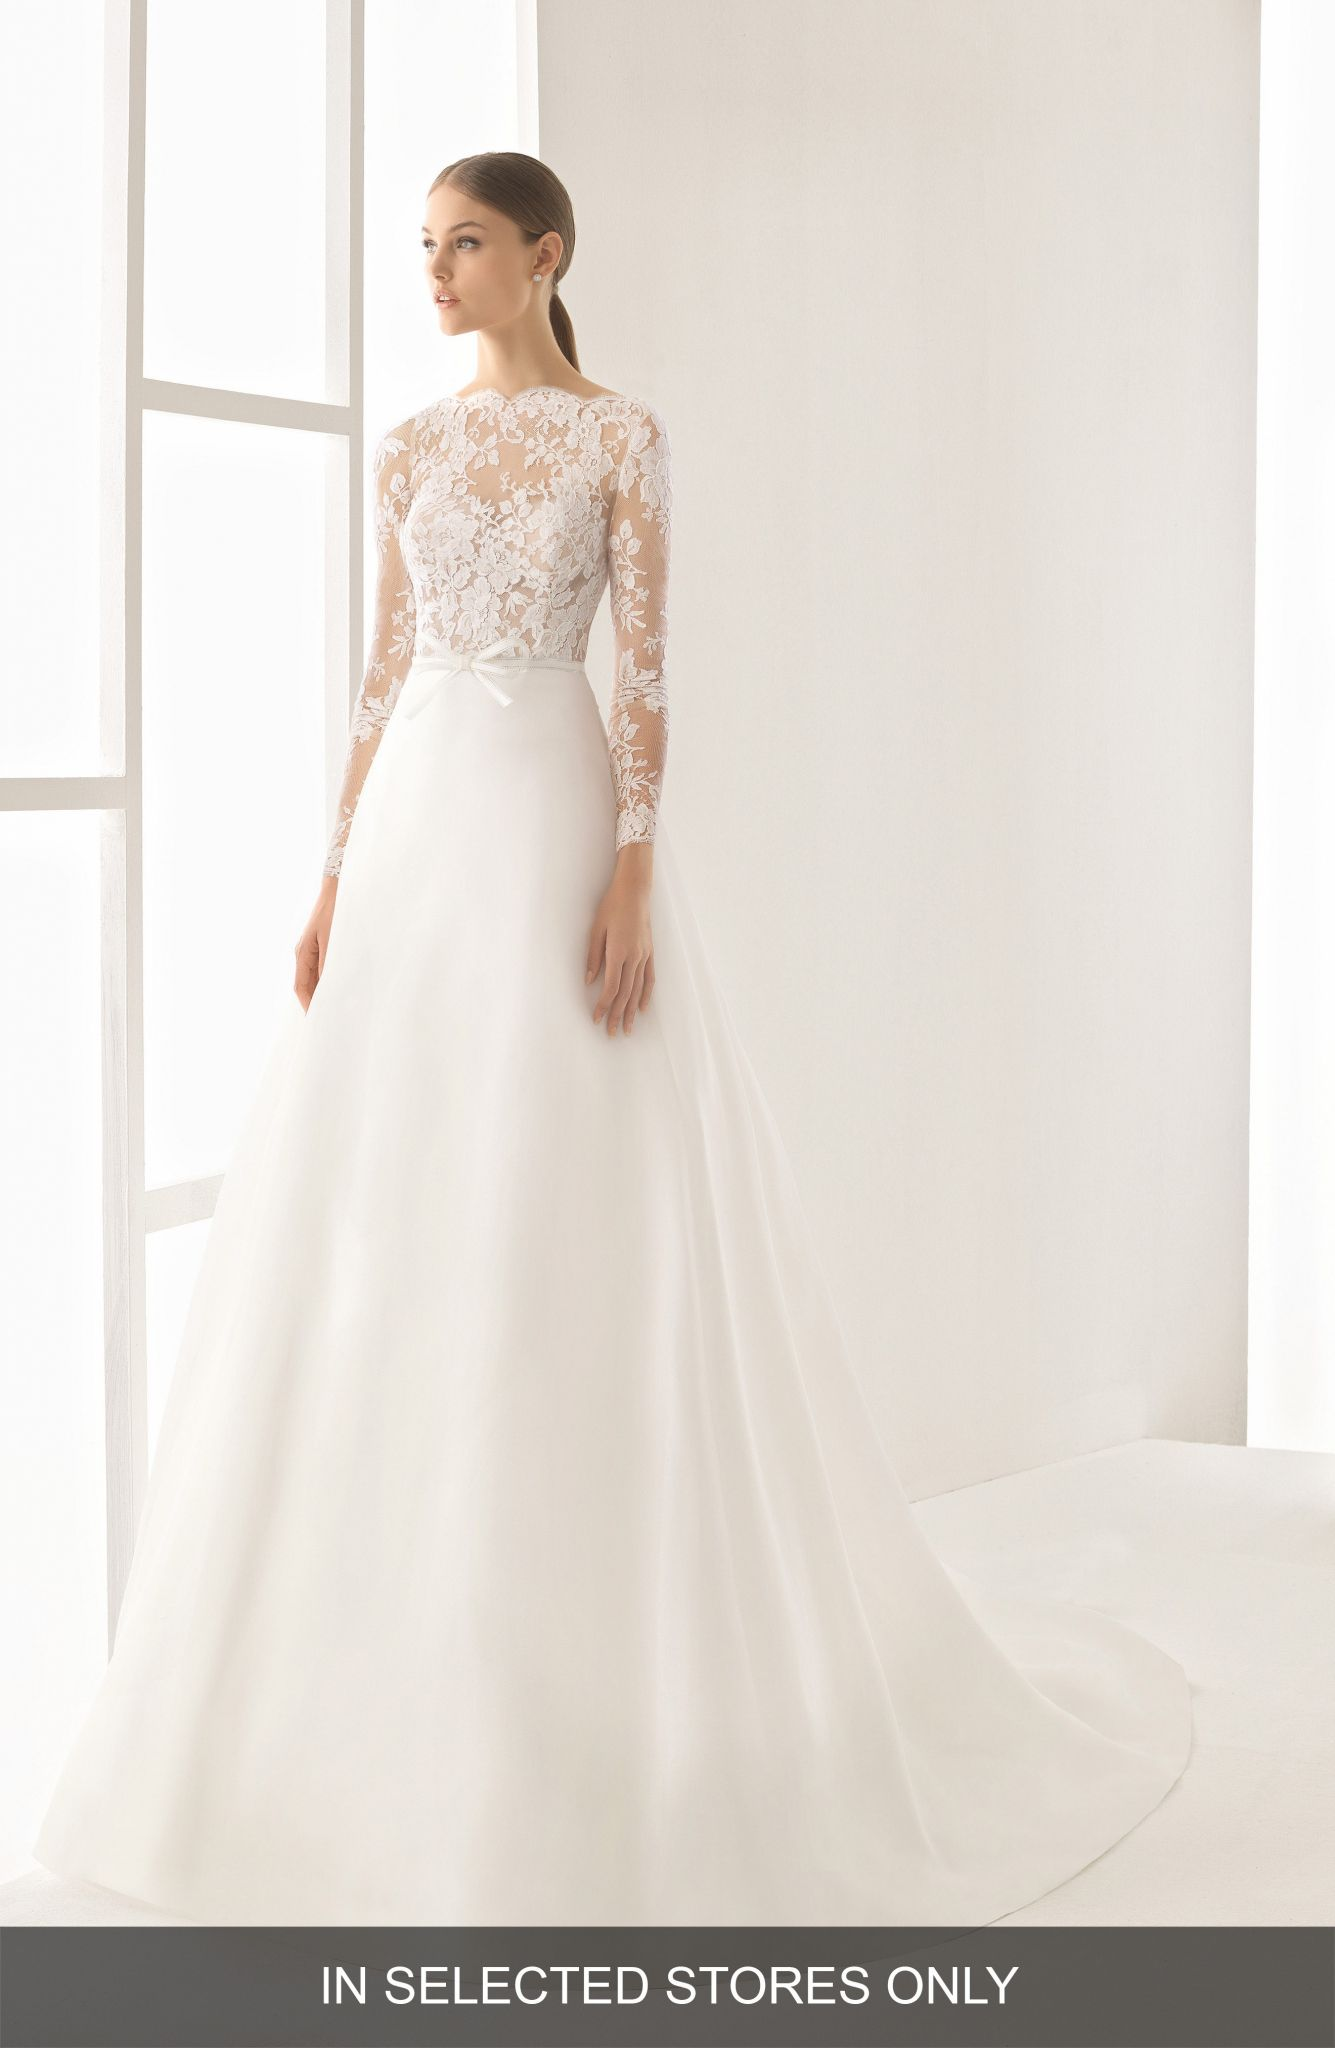 Simple Wedding Dresses Under 200 Dresses For Guest At Wedding Check More At Http Sves Popular Wedding Dresses Informal Wedding Dresses Wedding Dresses Lace